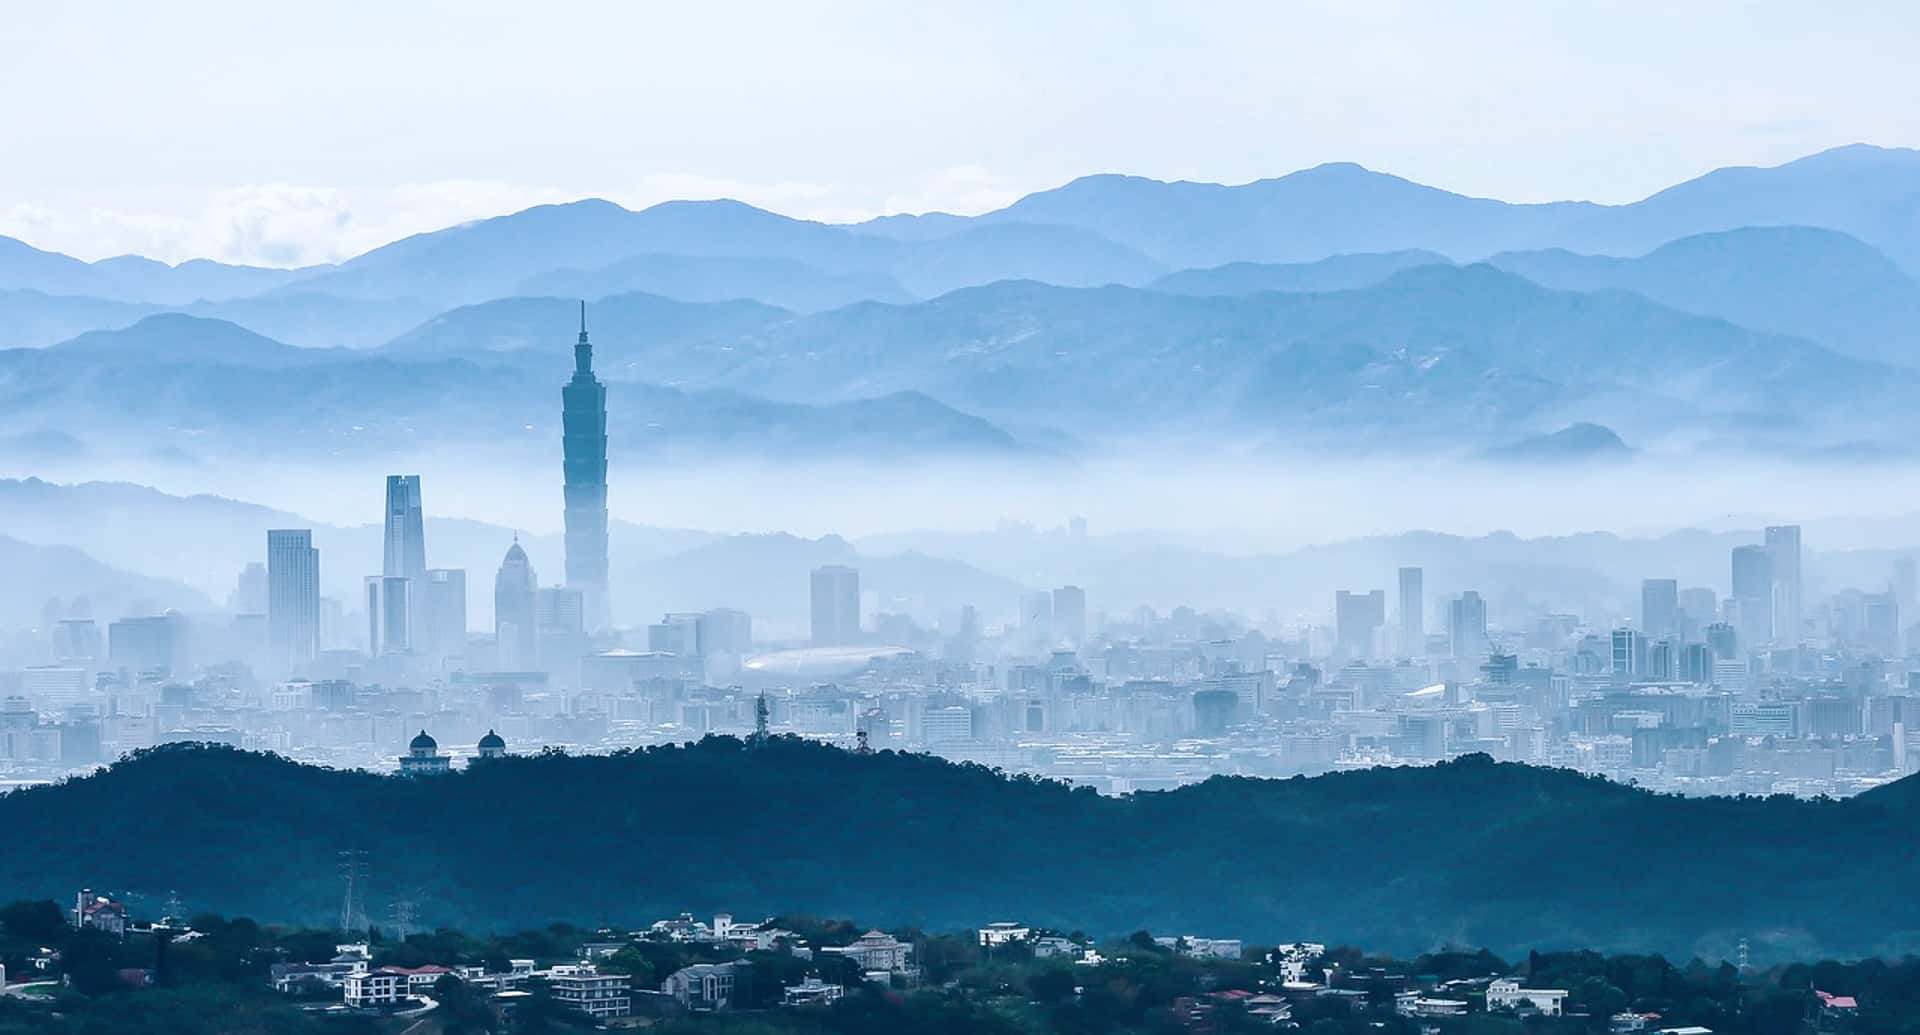 A super detailed Taipei travel guide for planning all types of travel to Taipei